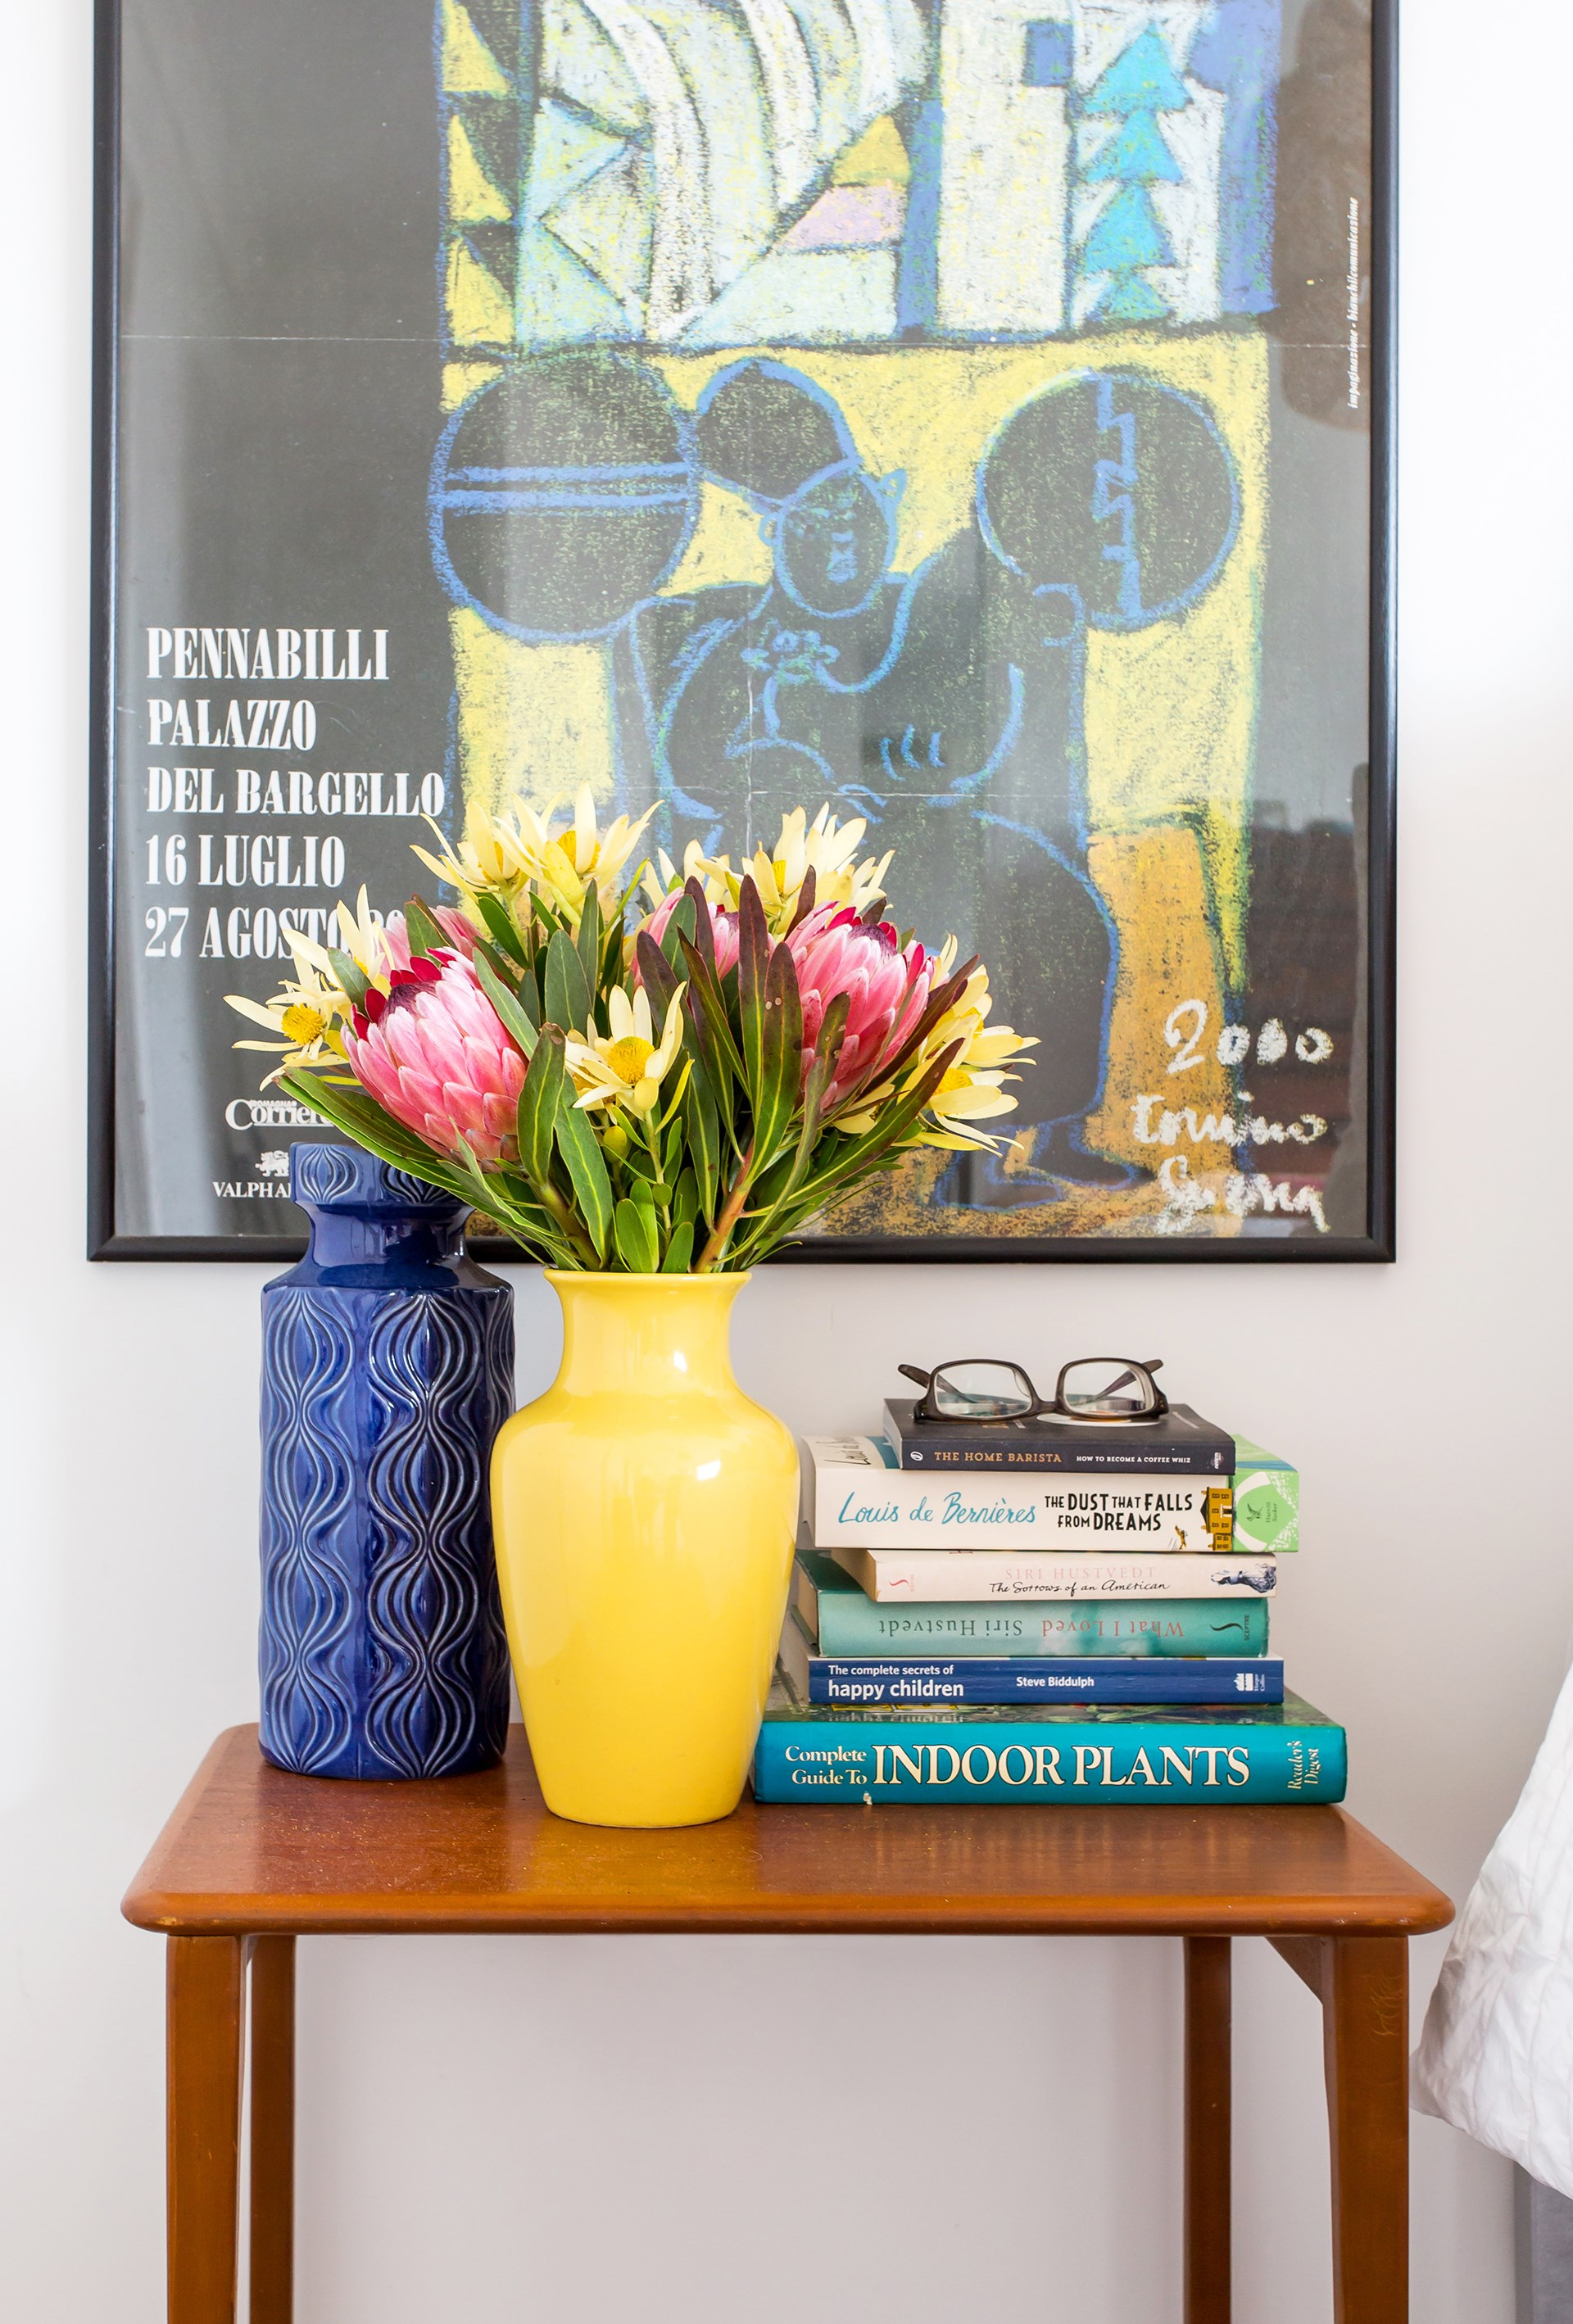 Vintage prints, op shop finds and classic colourful vases complete this retro vignette. Photo: Katherine Jamison / homes+